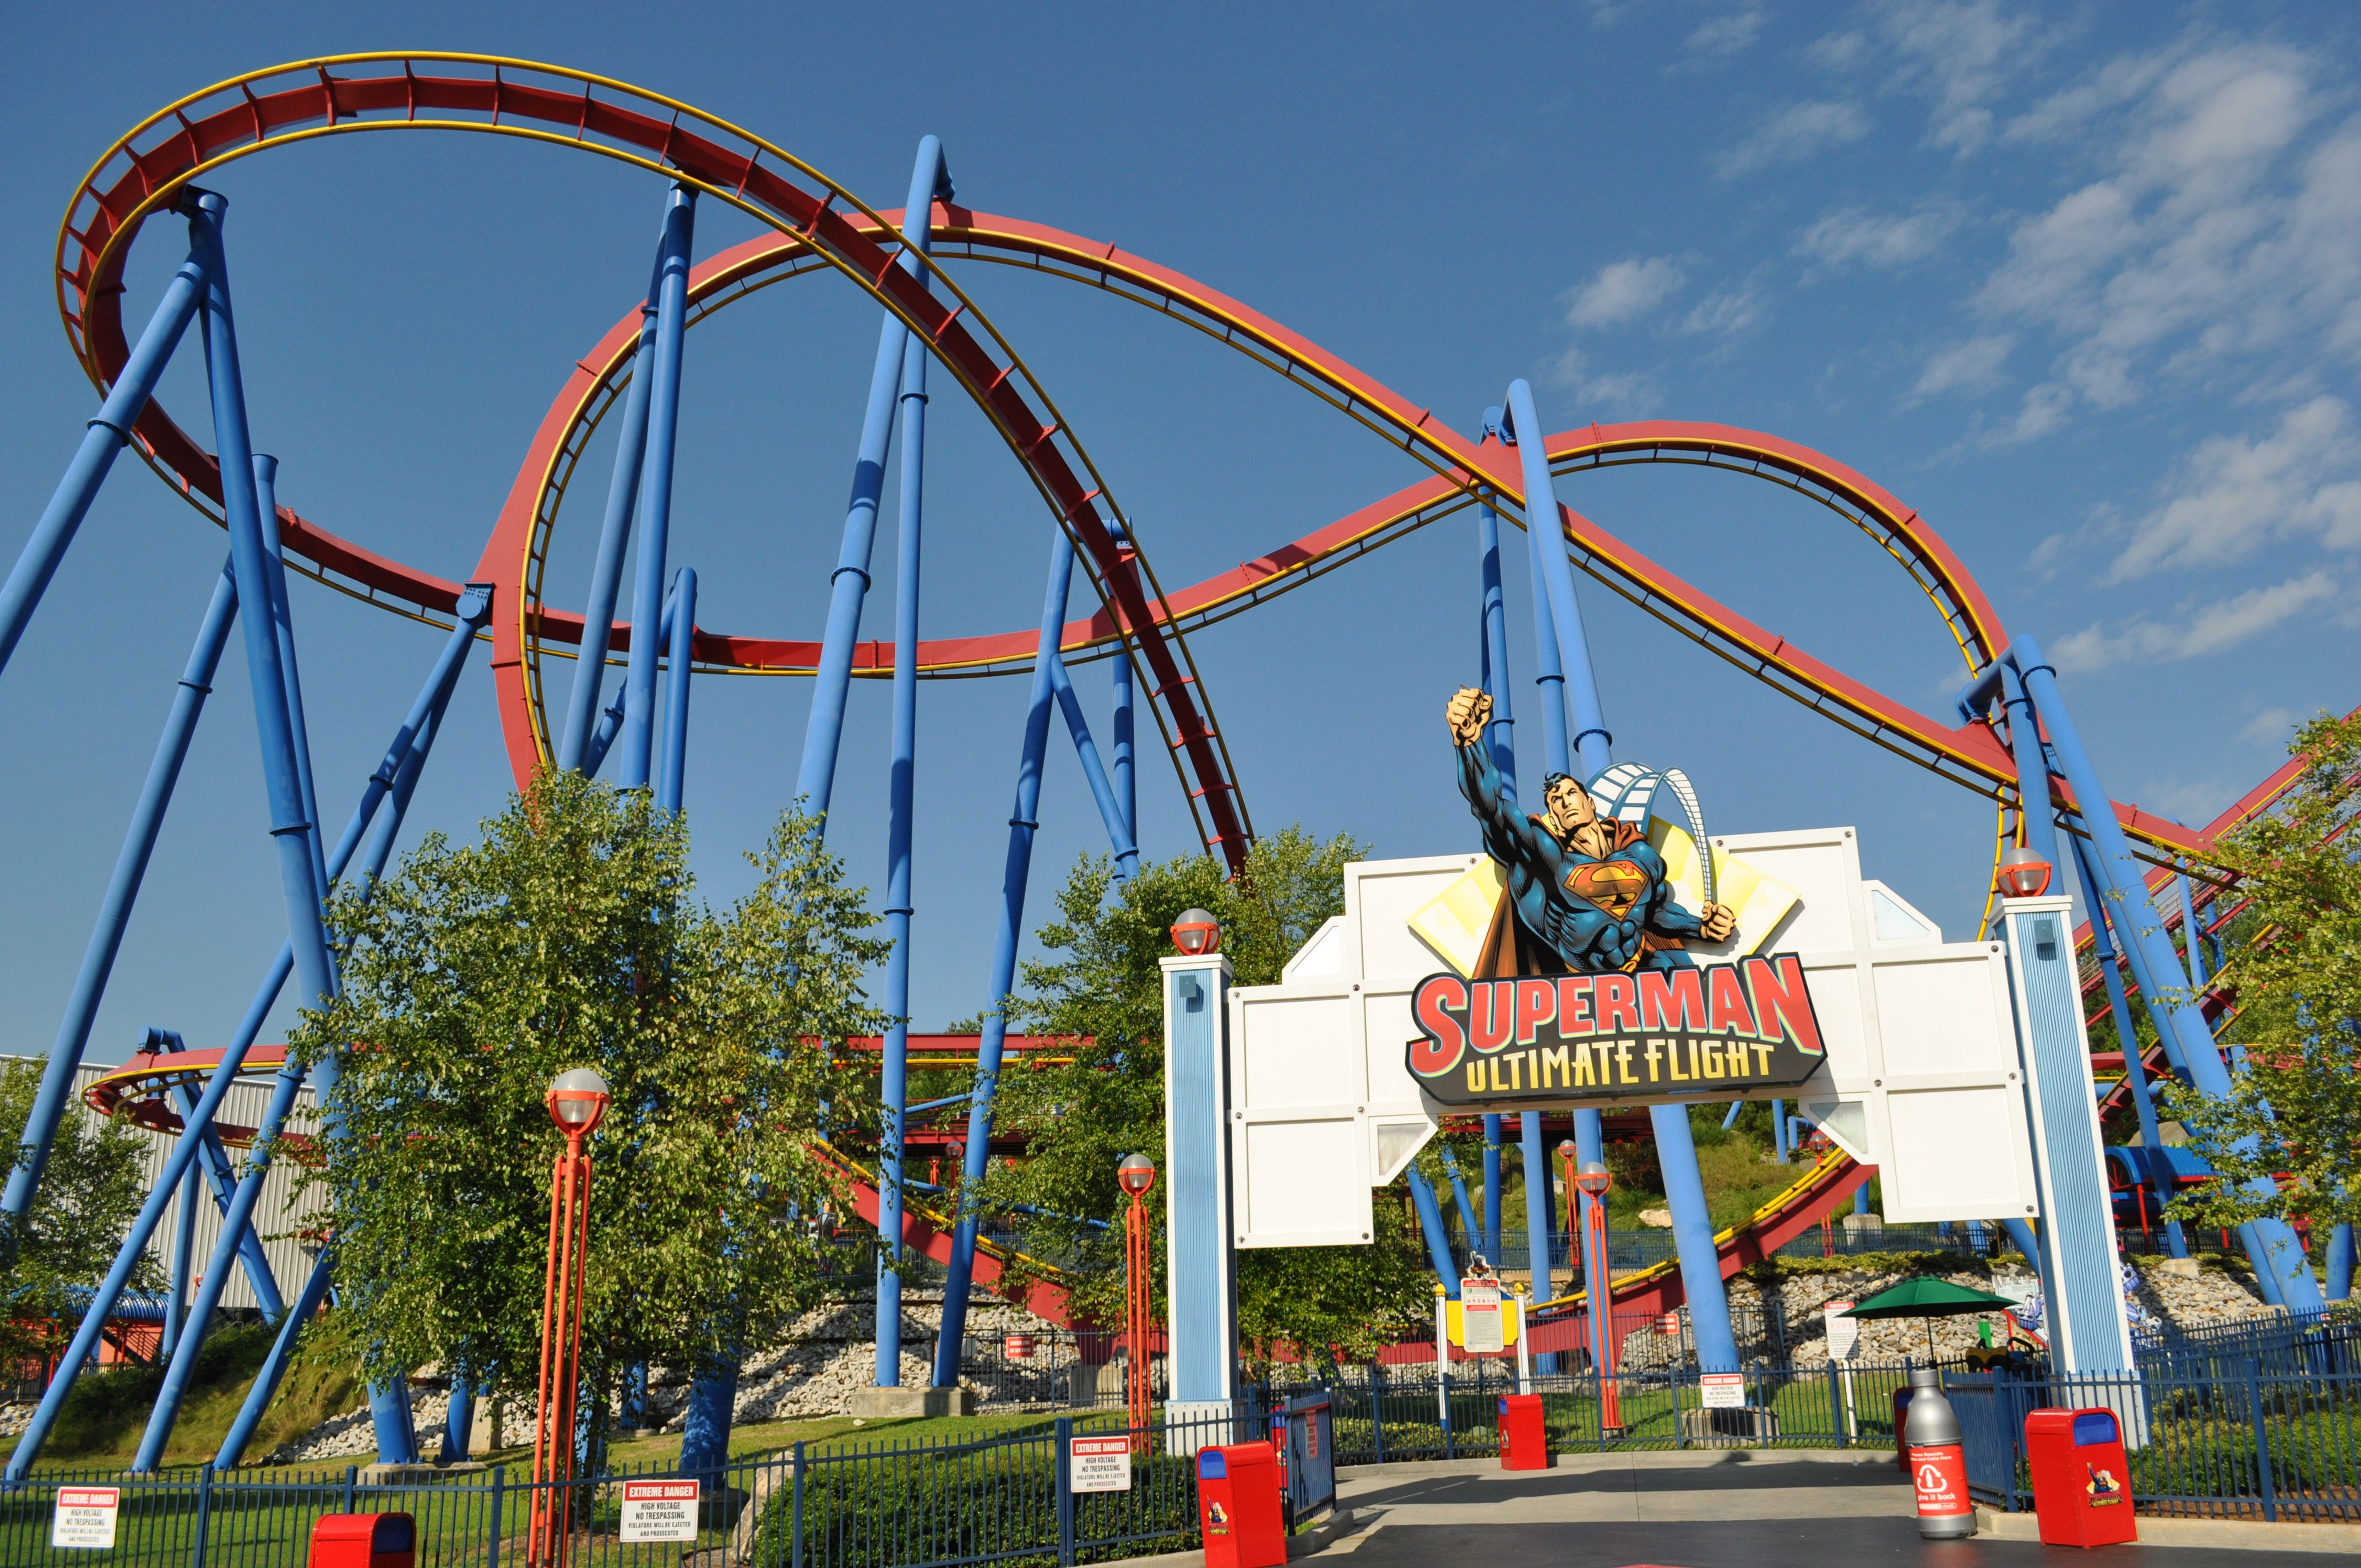 Superman Ultimate Flight Six Flags Over Ga Bolliger And Mabillard Steel Flying Theme Parks Rides Crazy Roller Coaster Roller Coaster Ride